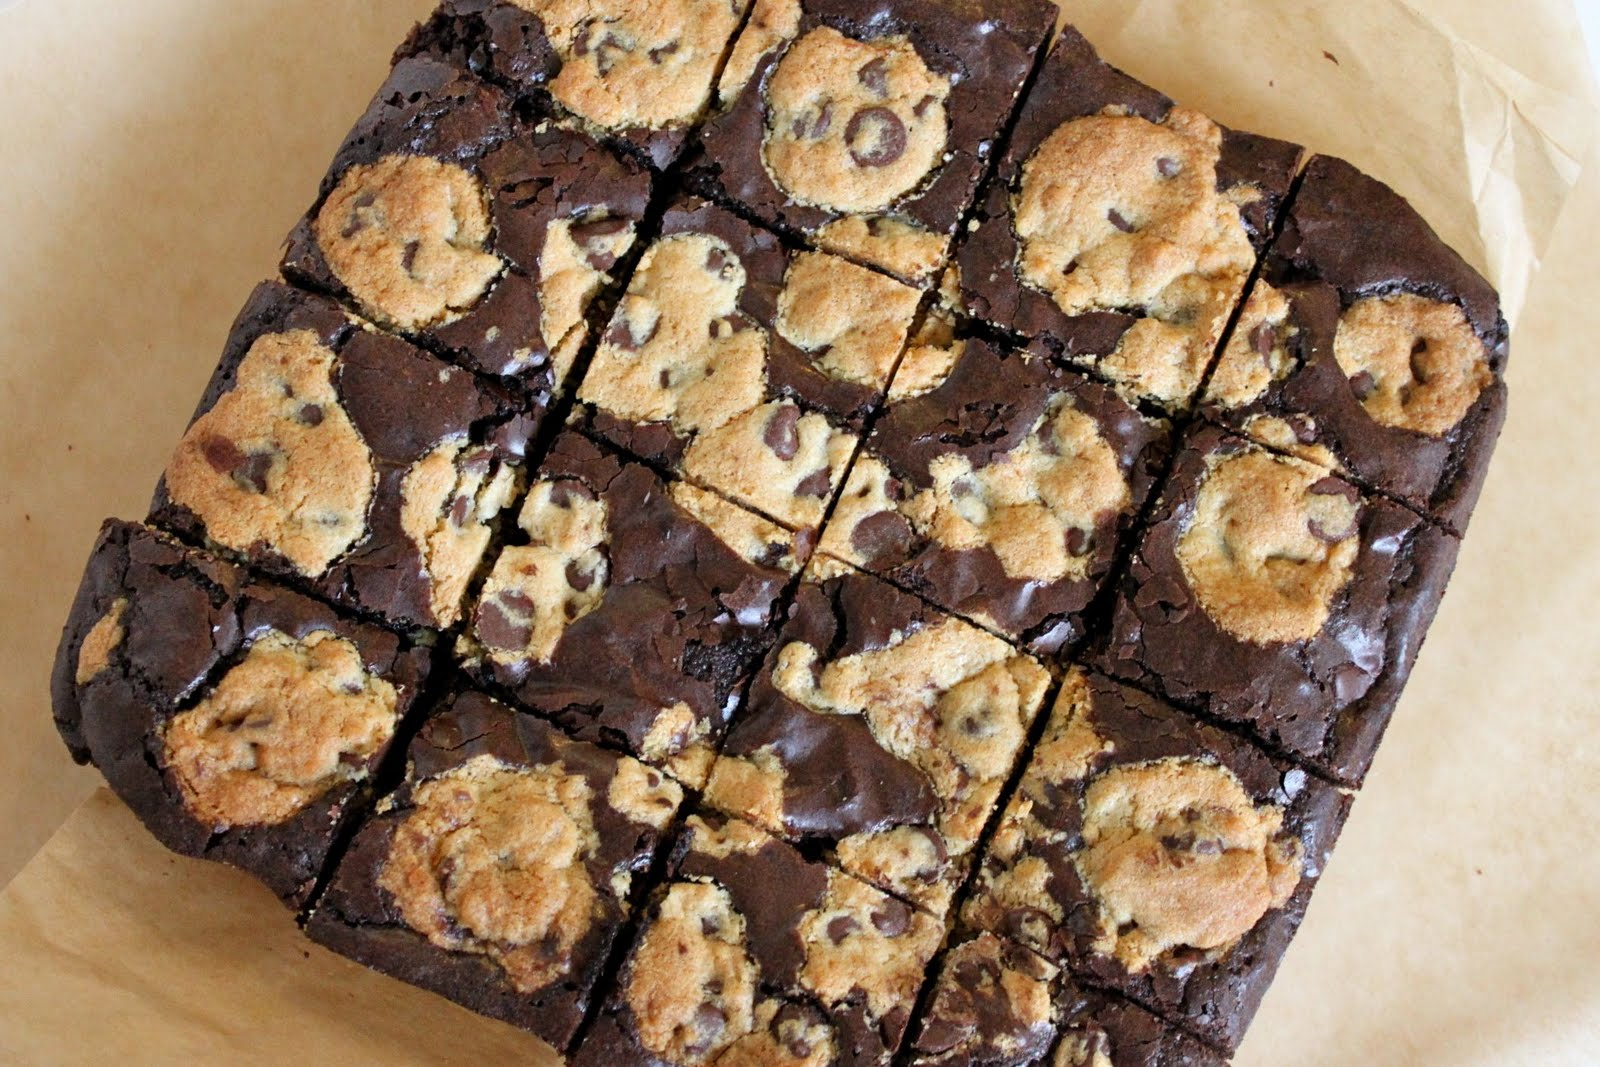 Baked Perfection: Brownies studded with Chocolate Chip Cookies